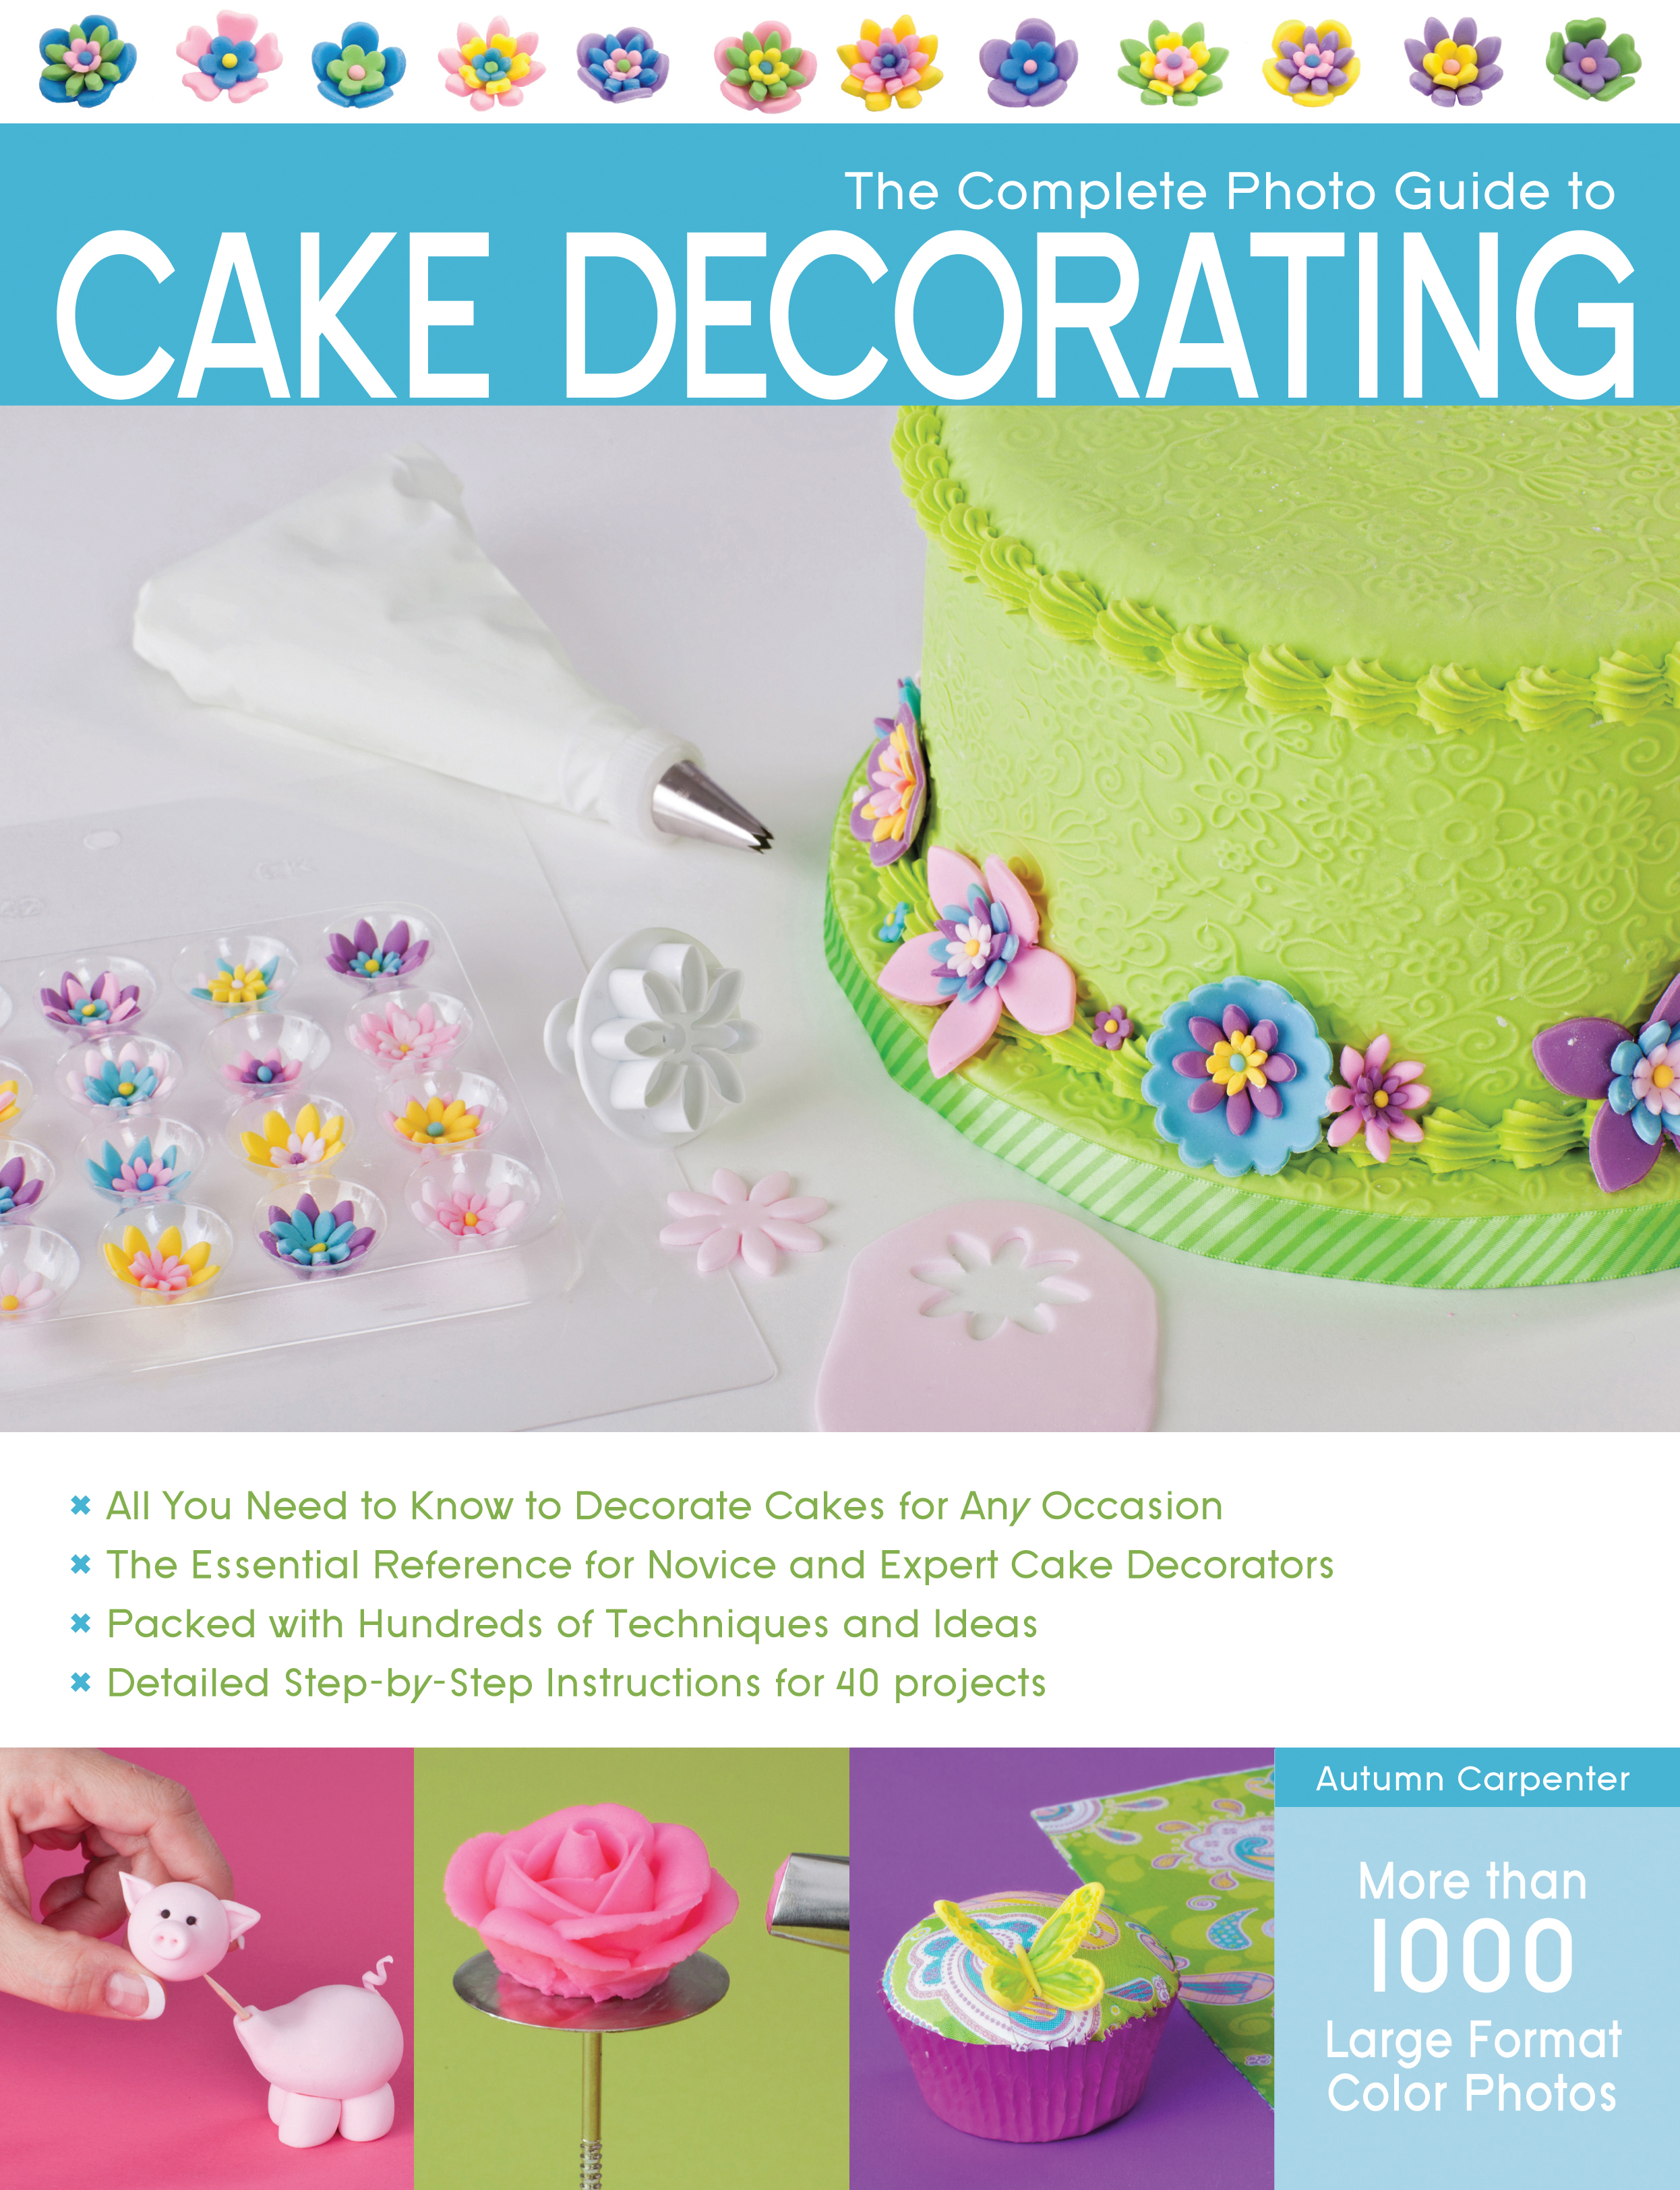 The Complete Photo Guide to Cake Decorating - Autumn Carpenter ...